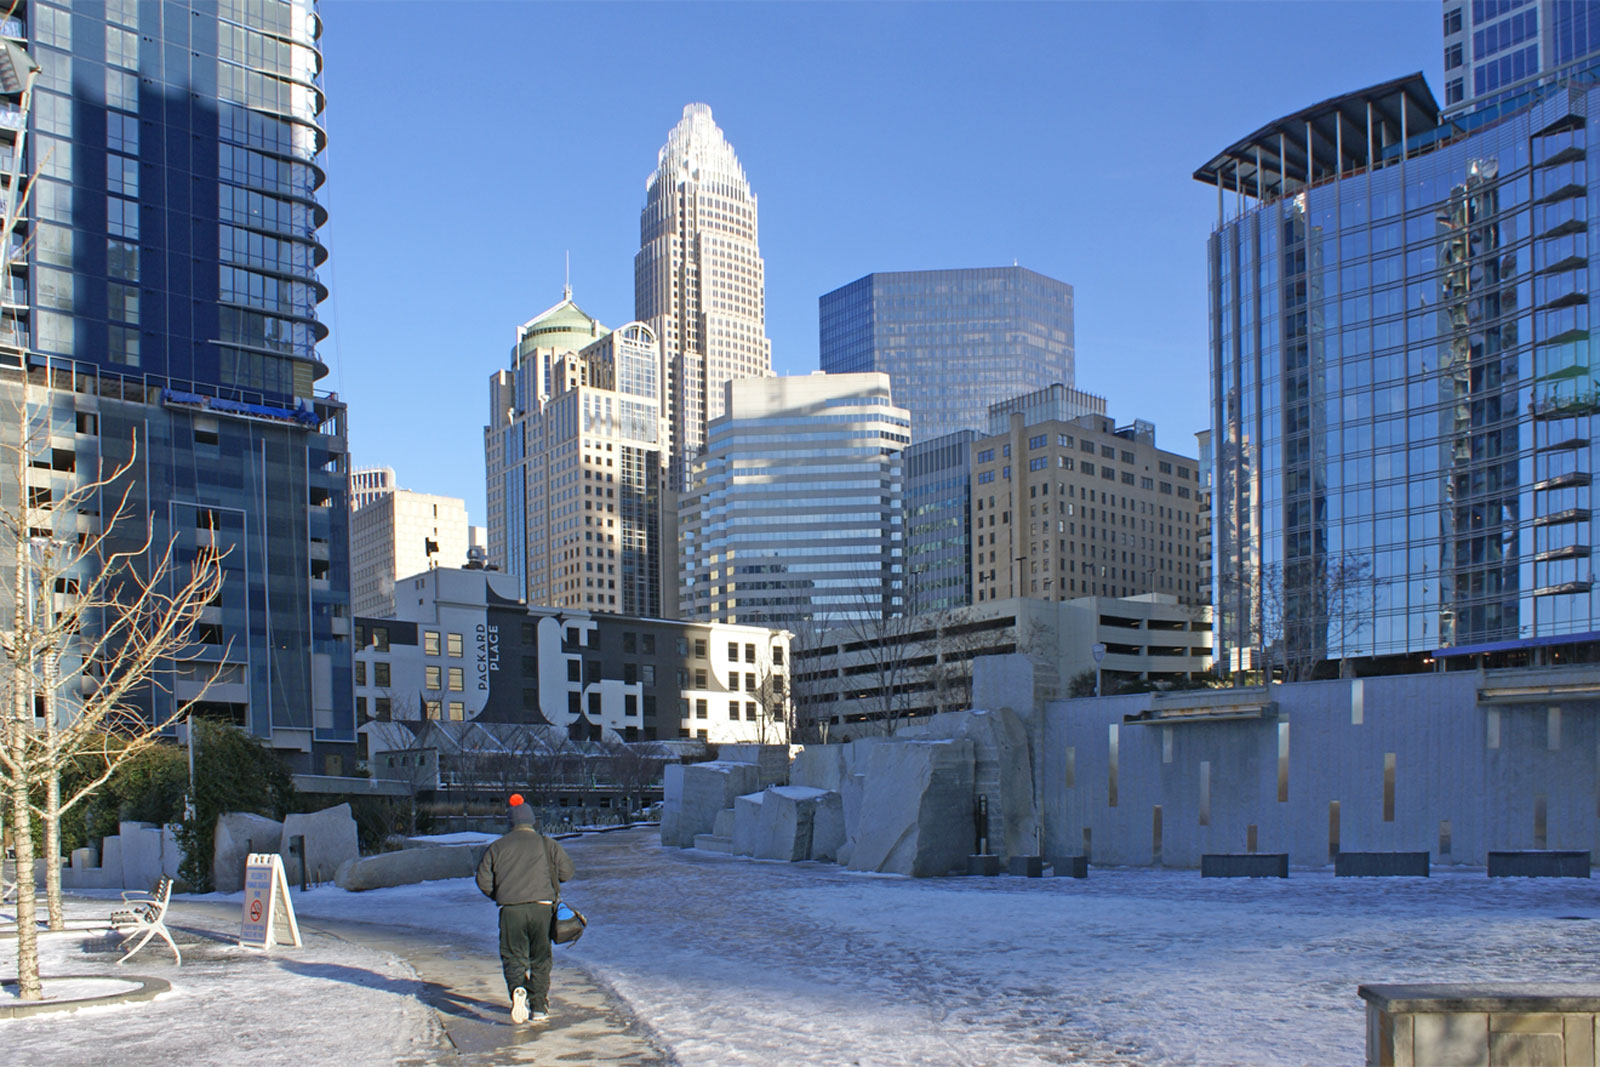 icy conditions in Uptown Charlotte